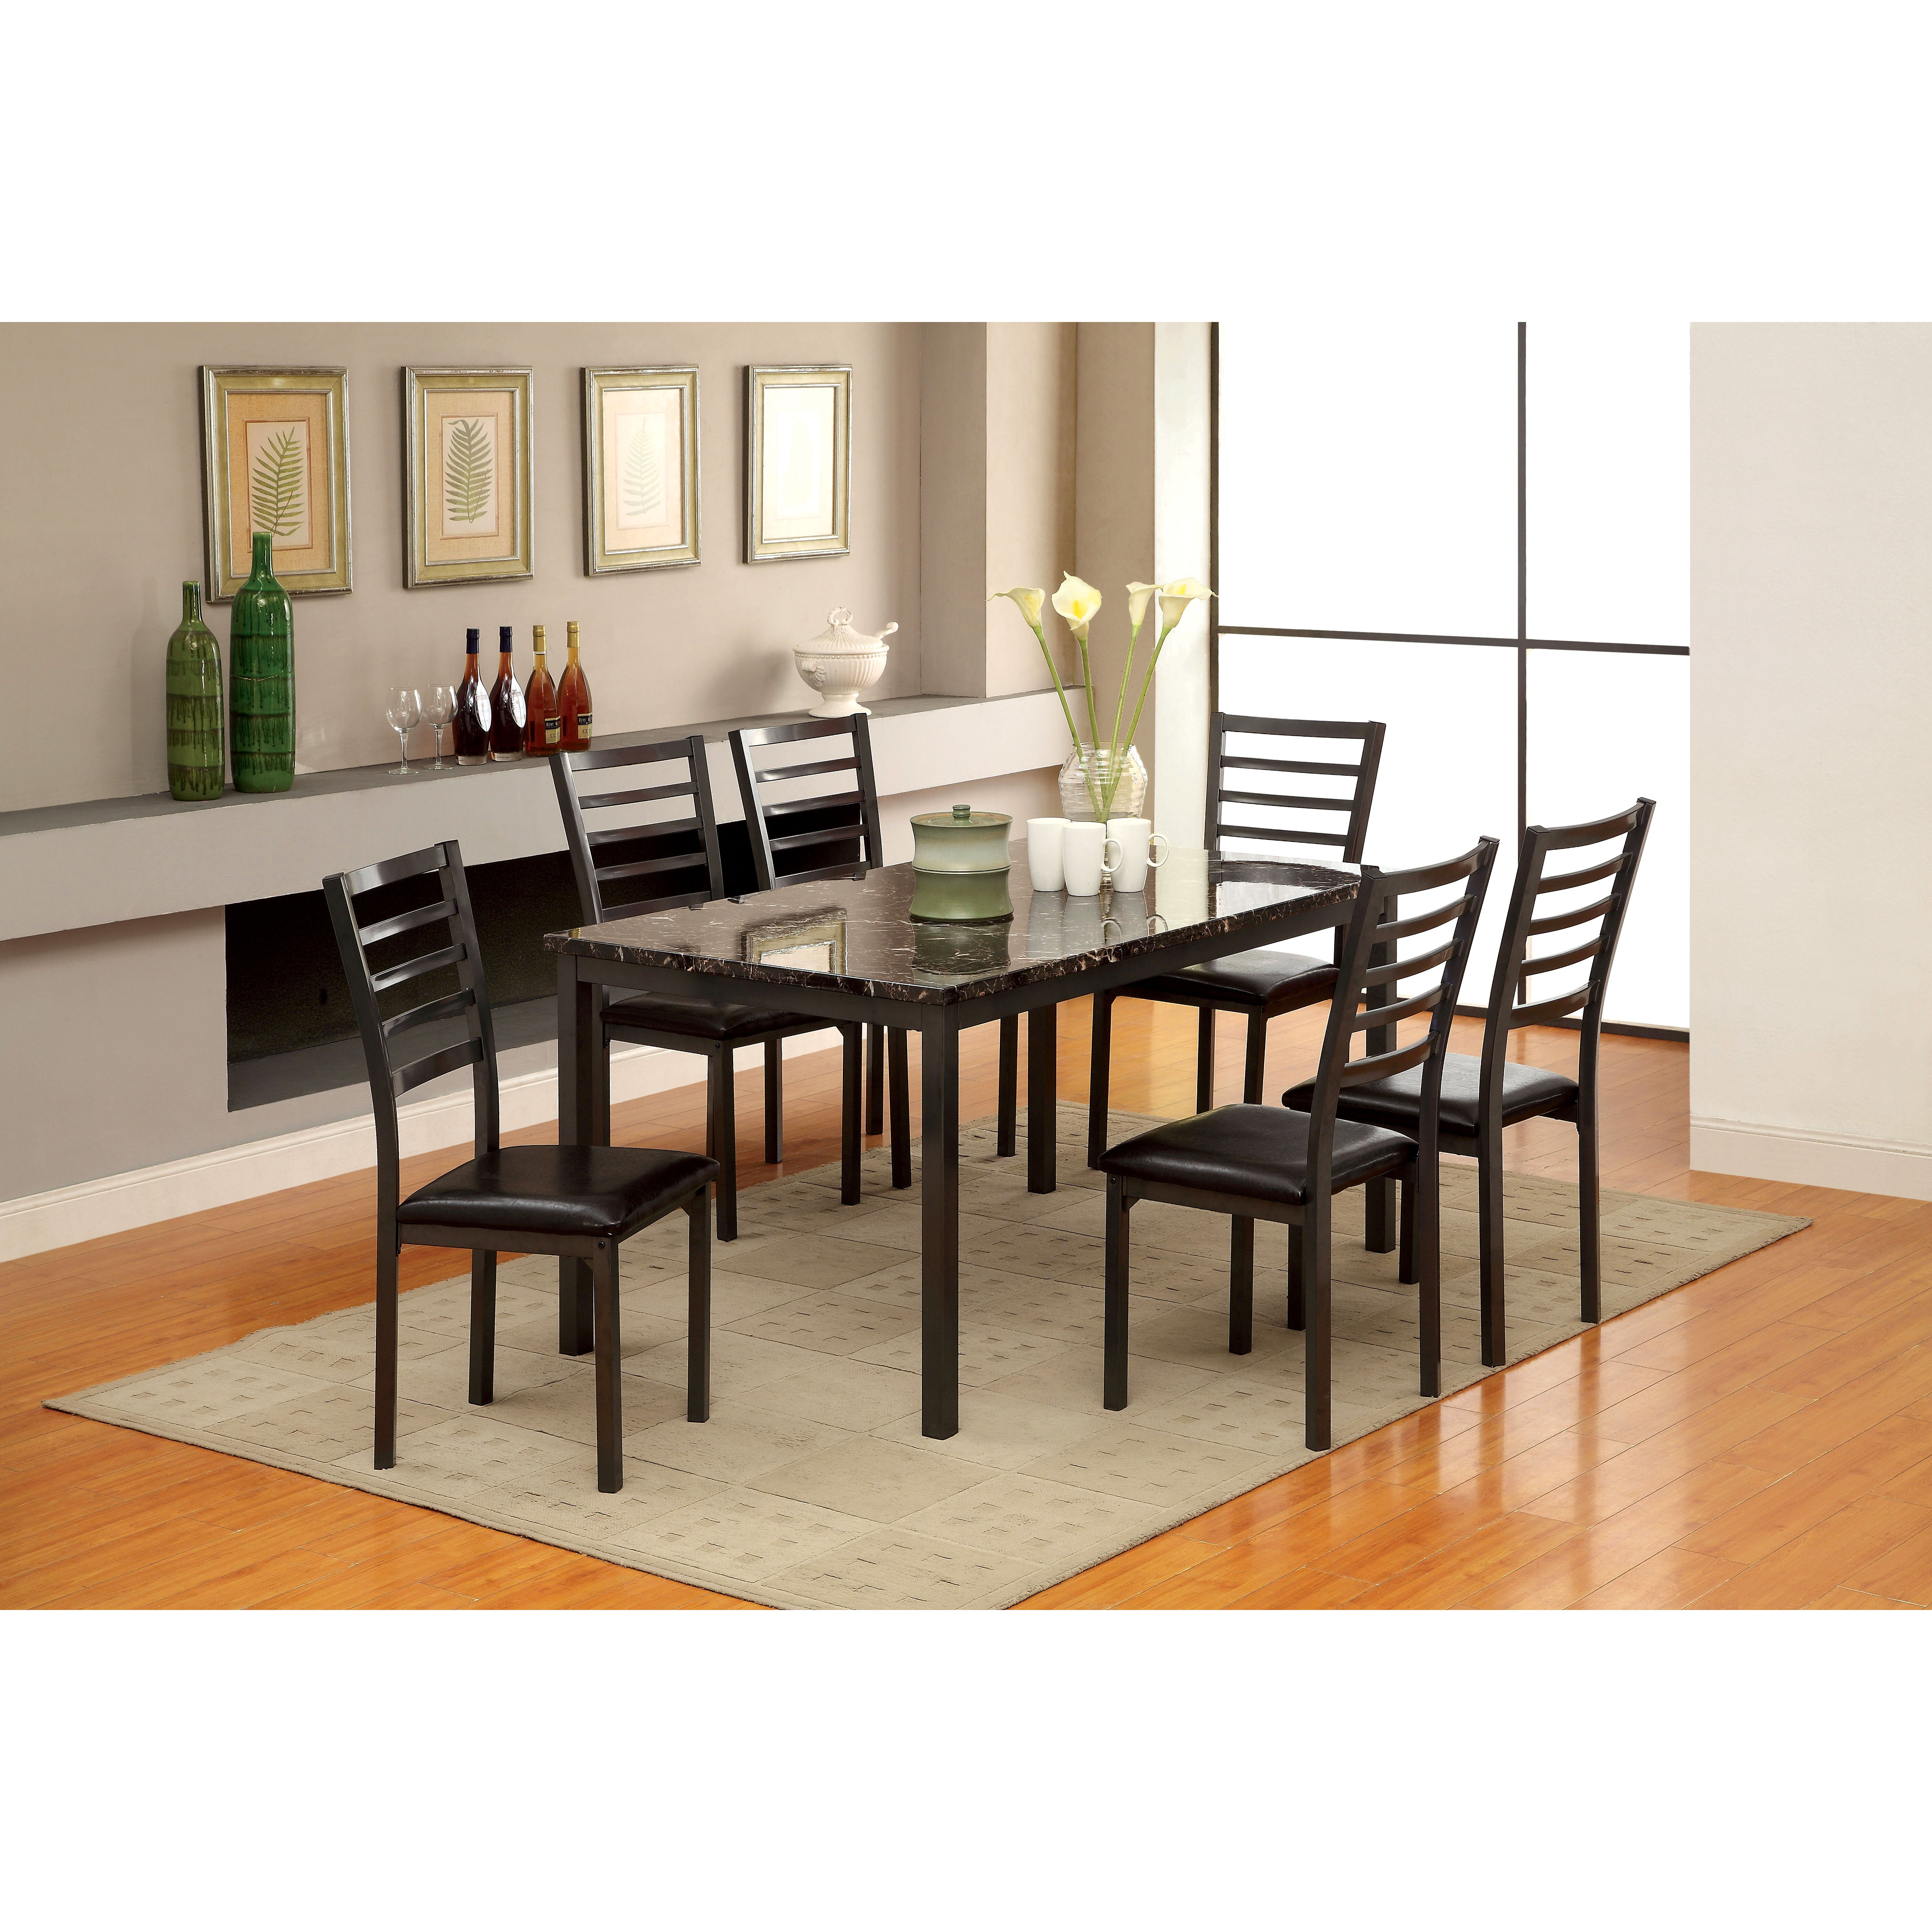 Hokku designs cramer 7 piece dining set reviews wayfair for Cramer furniture